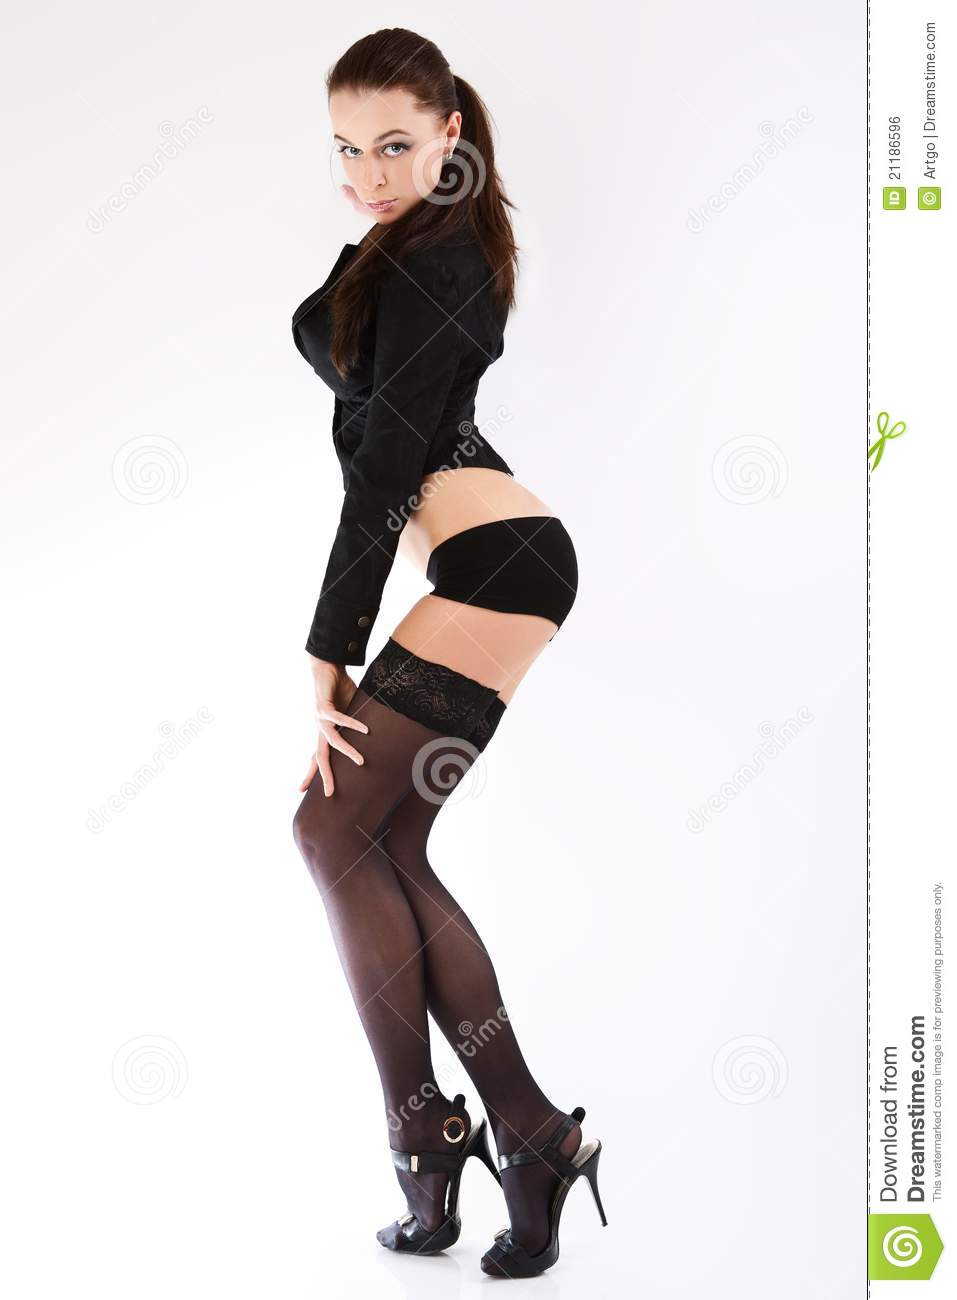 Glamorous woman in black stockings and jacket.